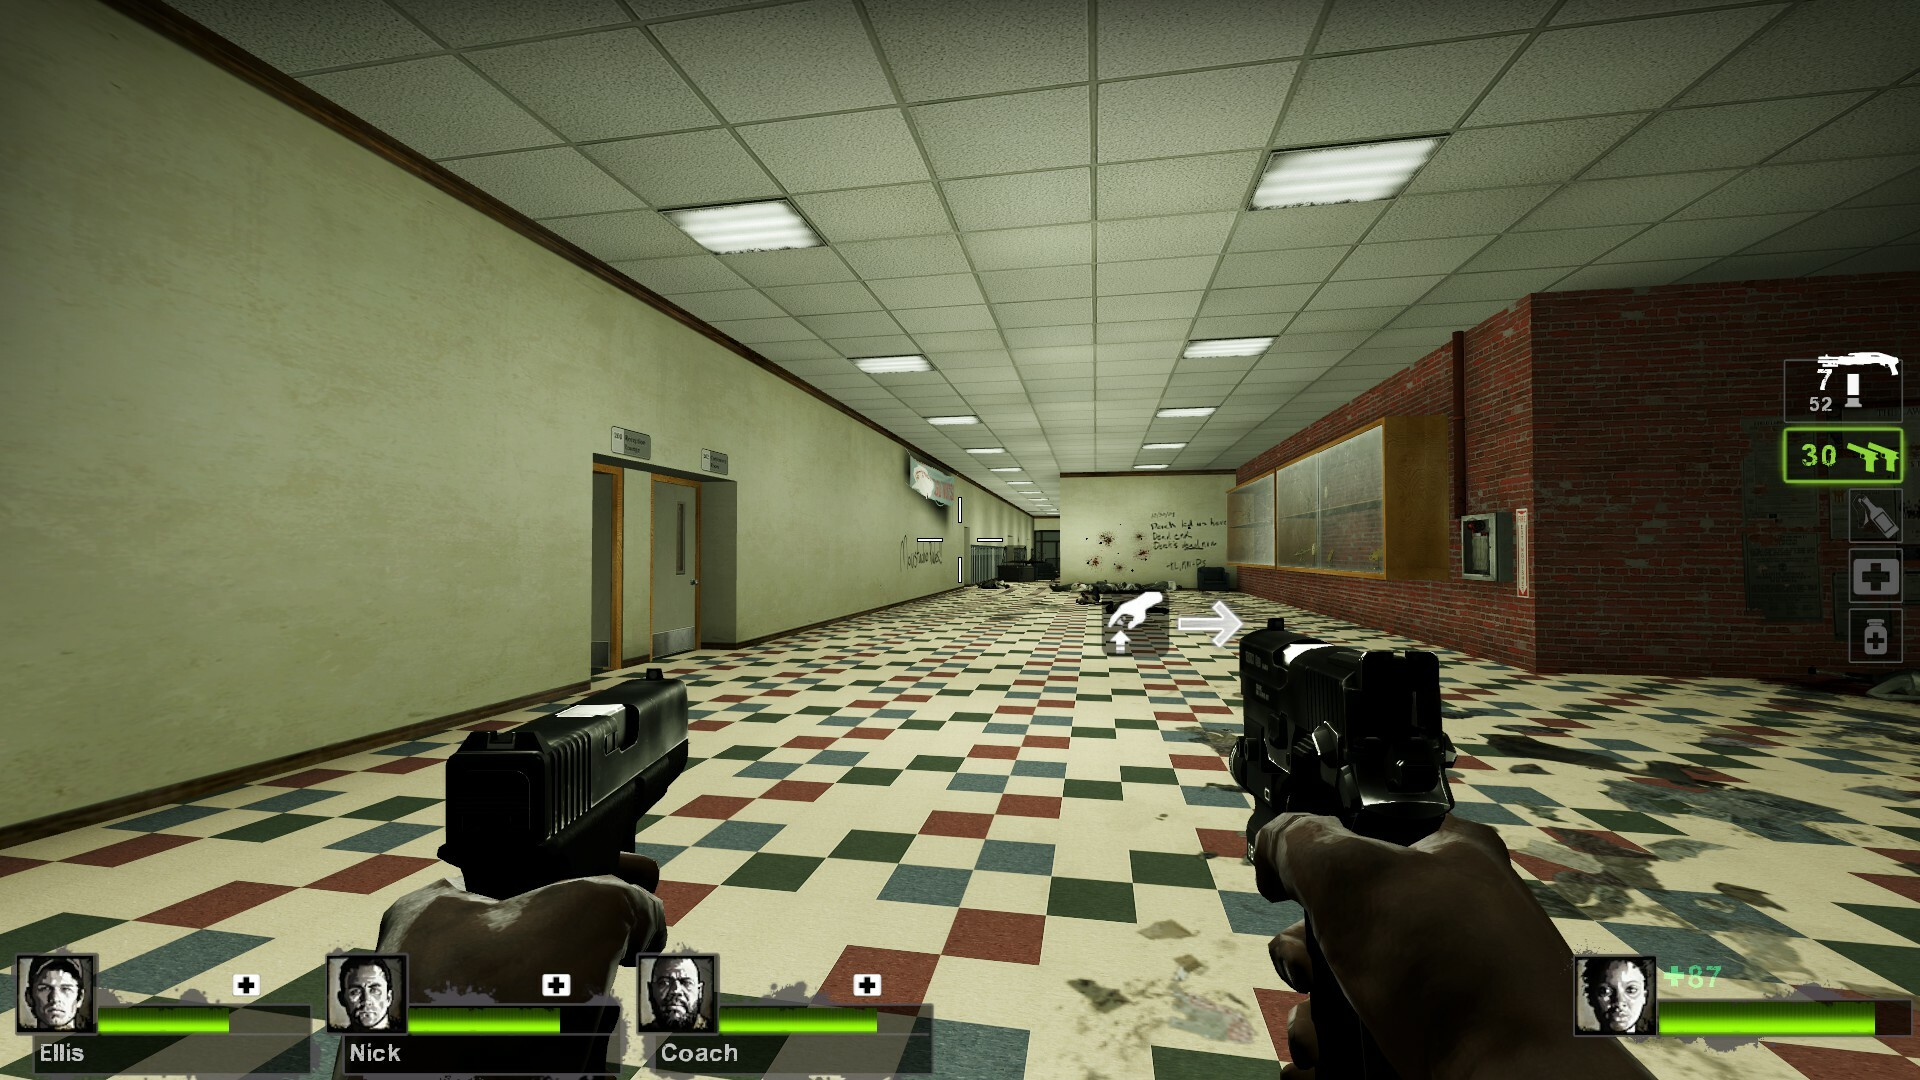 Inside the school building after the event. Players can explore the open rooms to find supplies. The lighting used here is make players feel safe, like they are now out of the dark and are free to explore.